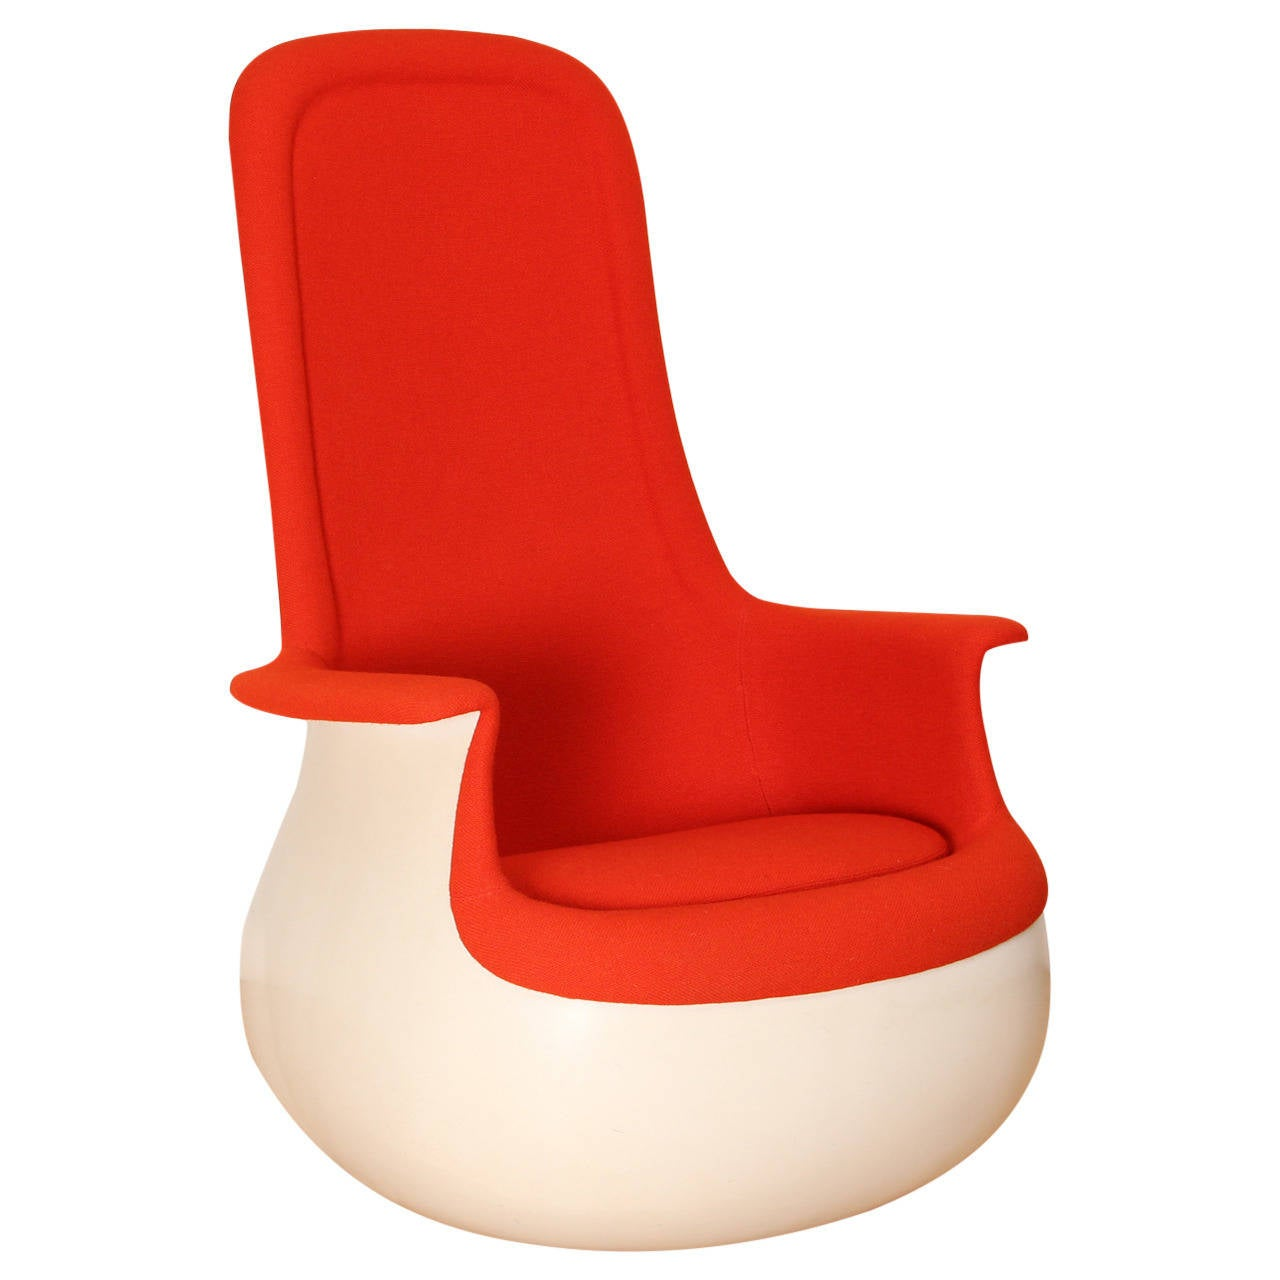 Culbuto Rocking Chair By Marc Held Produced By Knoll In 1967 At 1stdibs